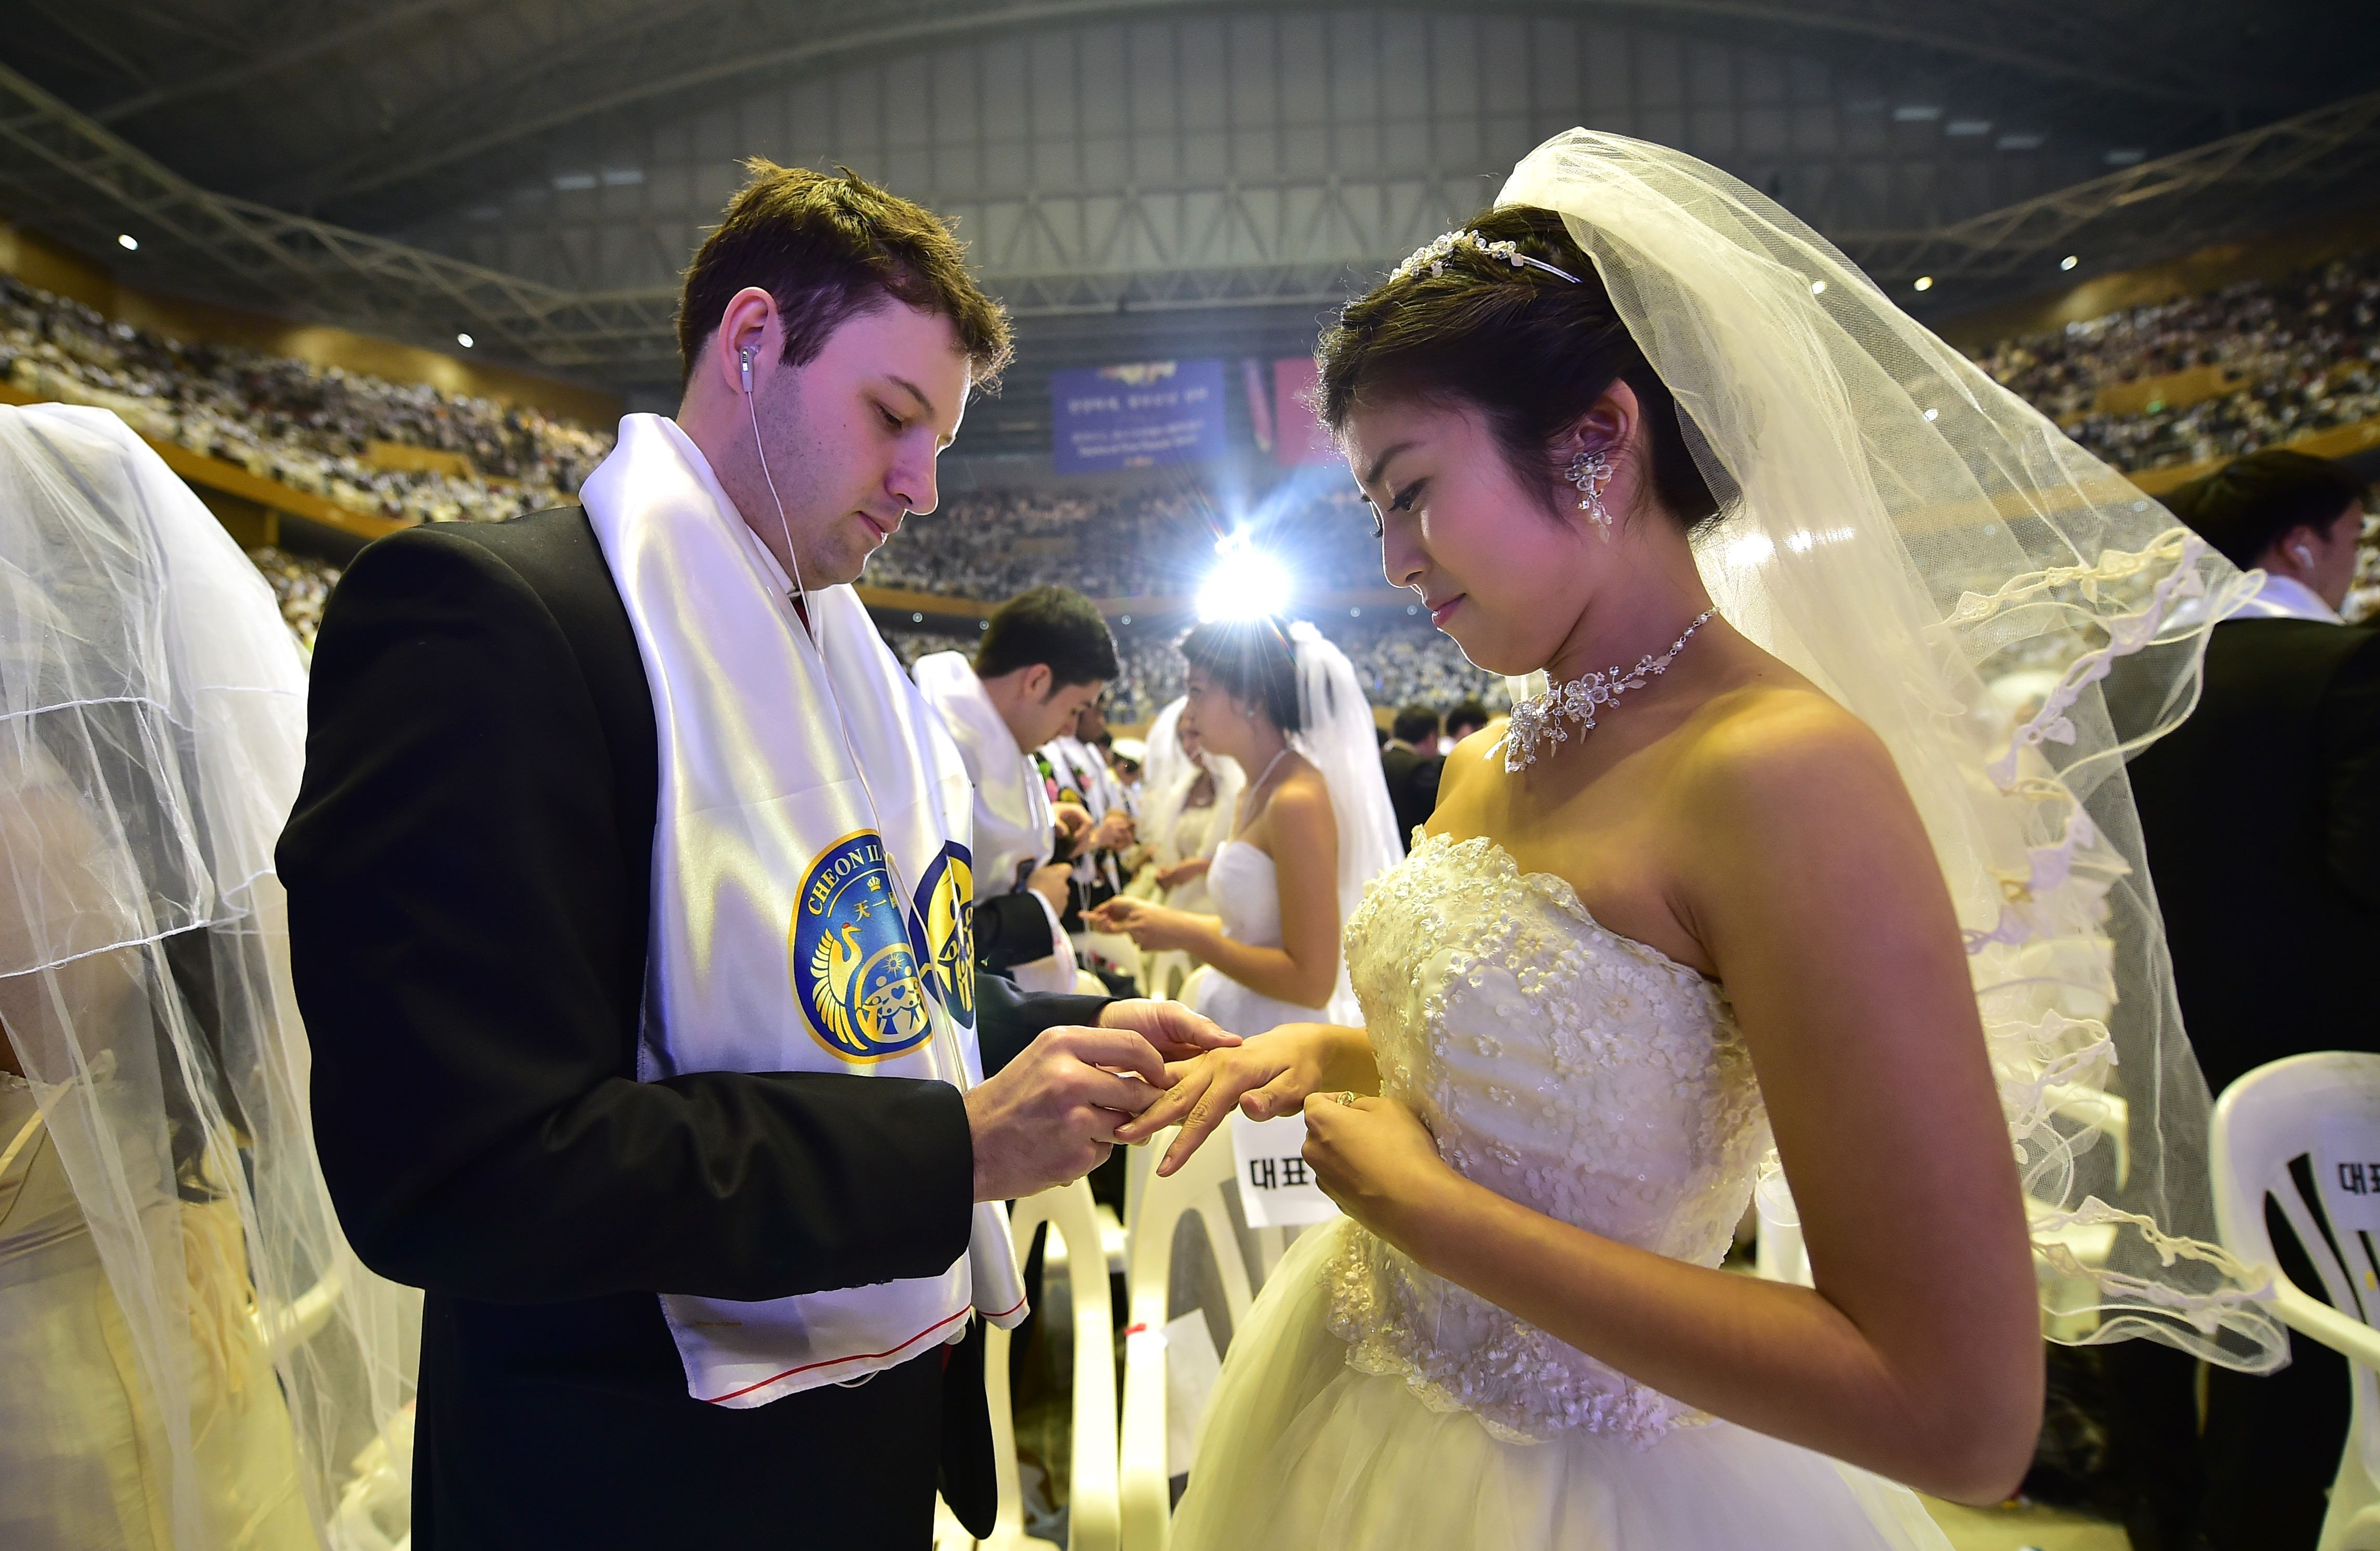 "A groom puts a ring on the finger of his bride during a mass wedding held by the Unification Church at Cheongshim Peace World Center in Gapyeong, east of Seoul, on February 20, 2016. Hundreds of couples were married at the South Korean headquarters of the Unification Church. The Unification Church, set up by Sun Myung Moon in Seoul in 1954, is one of the world's most controversial religious organisations, and its devotees are often dubbed ""Moonies"" after the founder. AFP PHOTO / JUNG YEON-JE SKOREA--RELIGION-UNIFICATION-MARRIAGE"